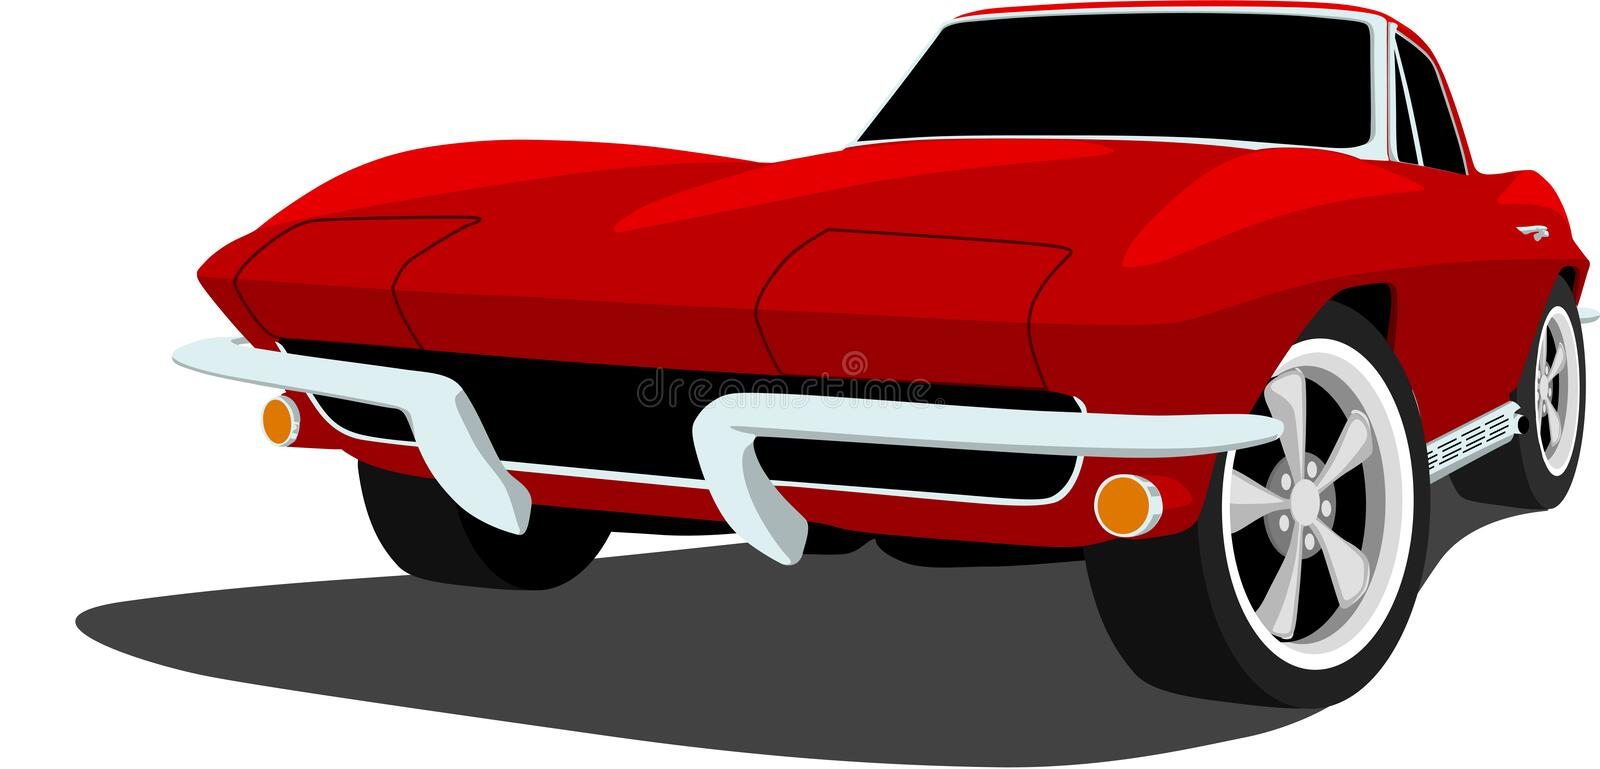 1960 s corvette sports car stock vector illustration of performance rh dreamstime com corvette clip art black and white corvette clip art silhouette